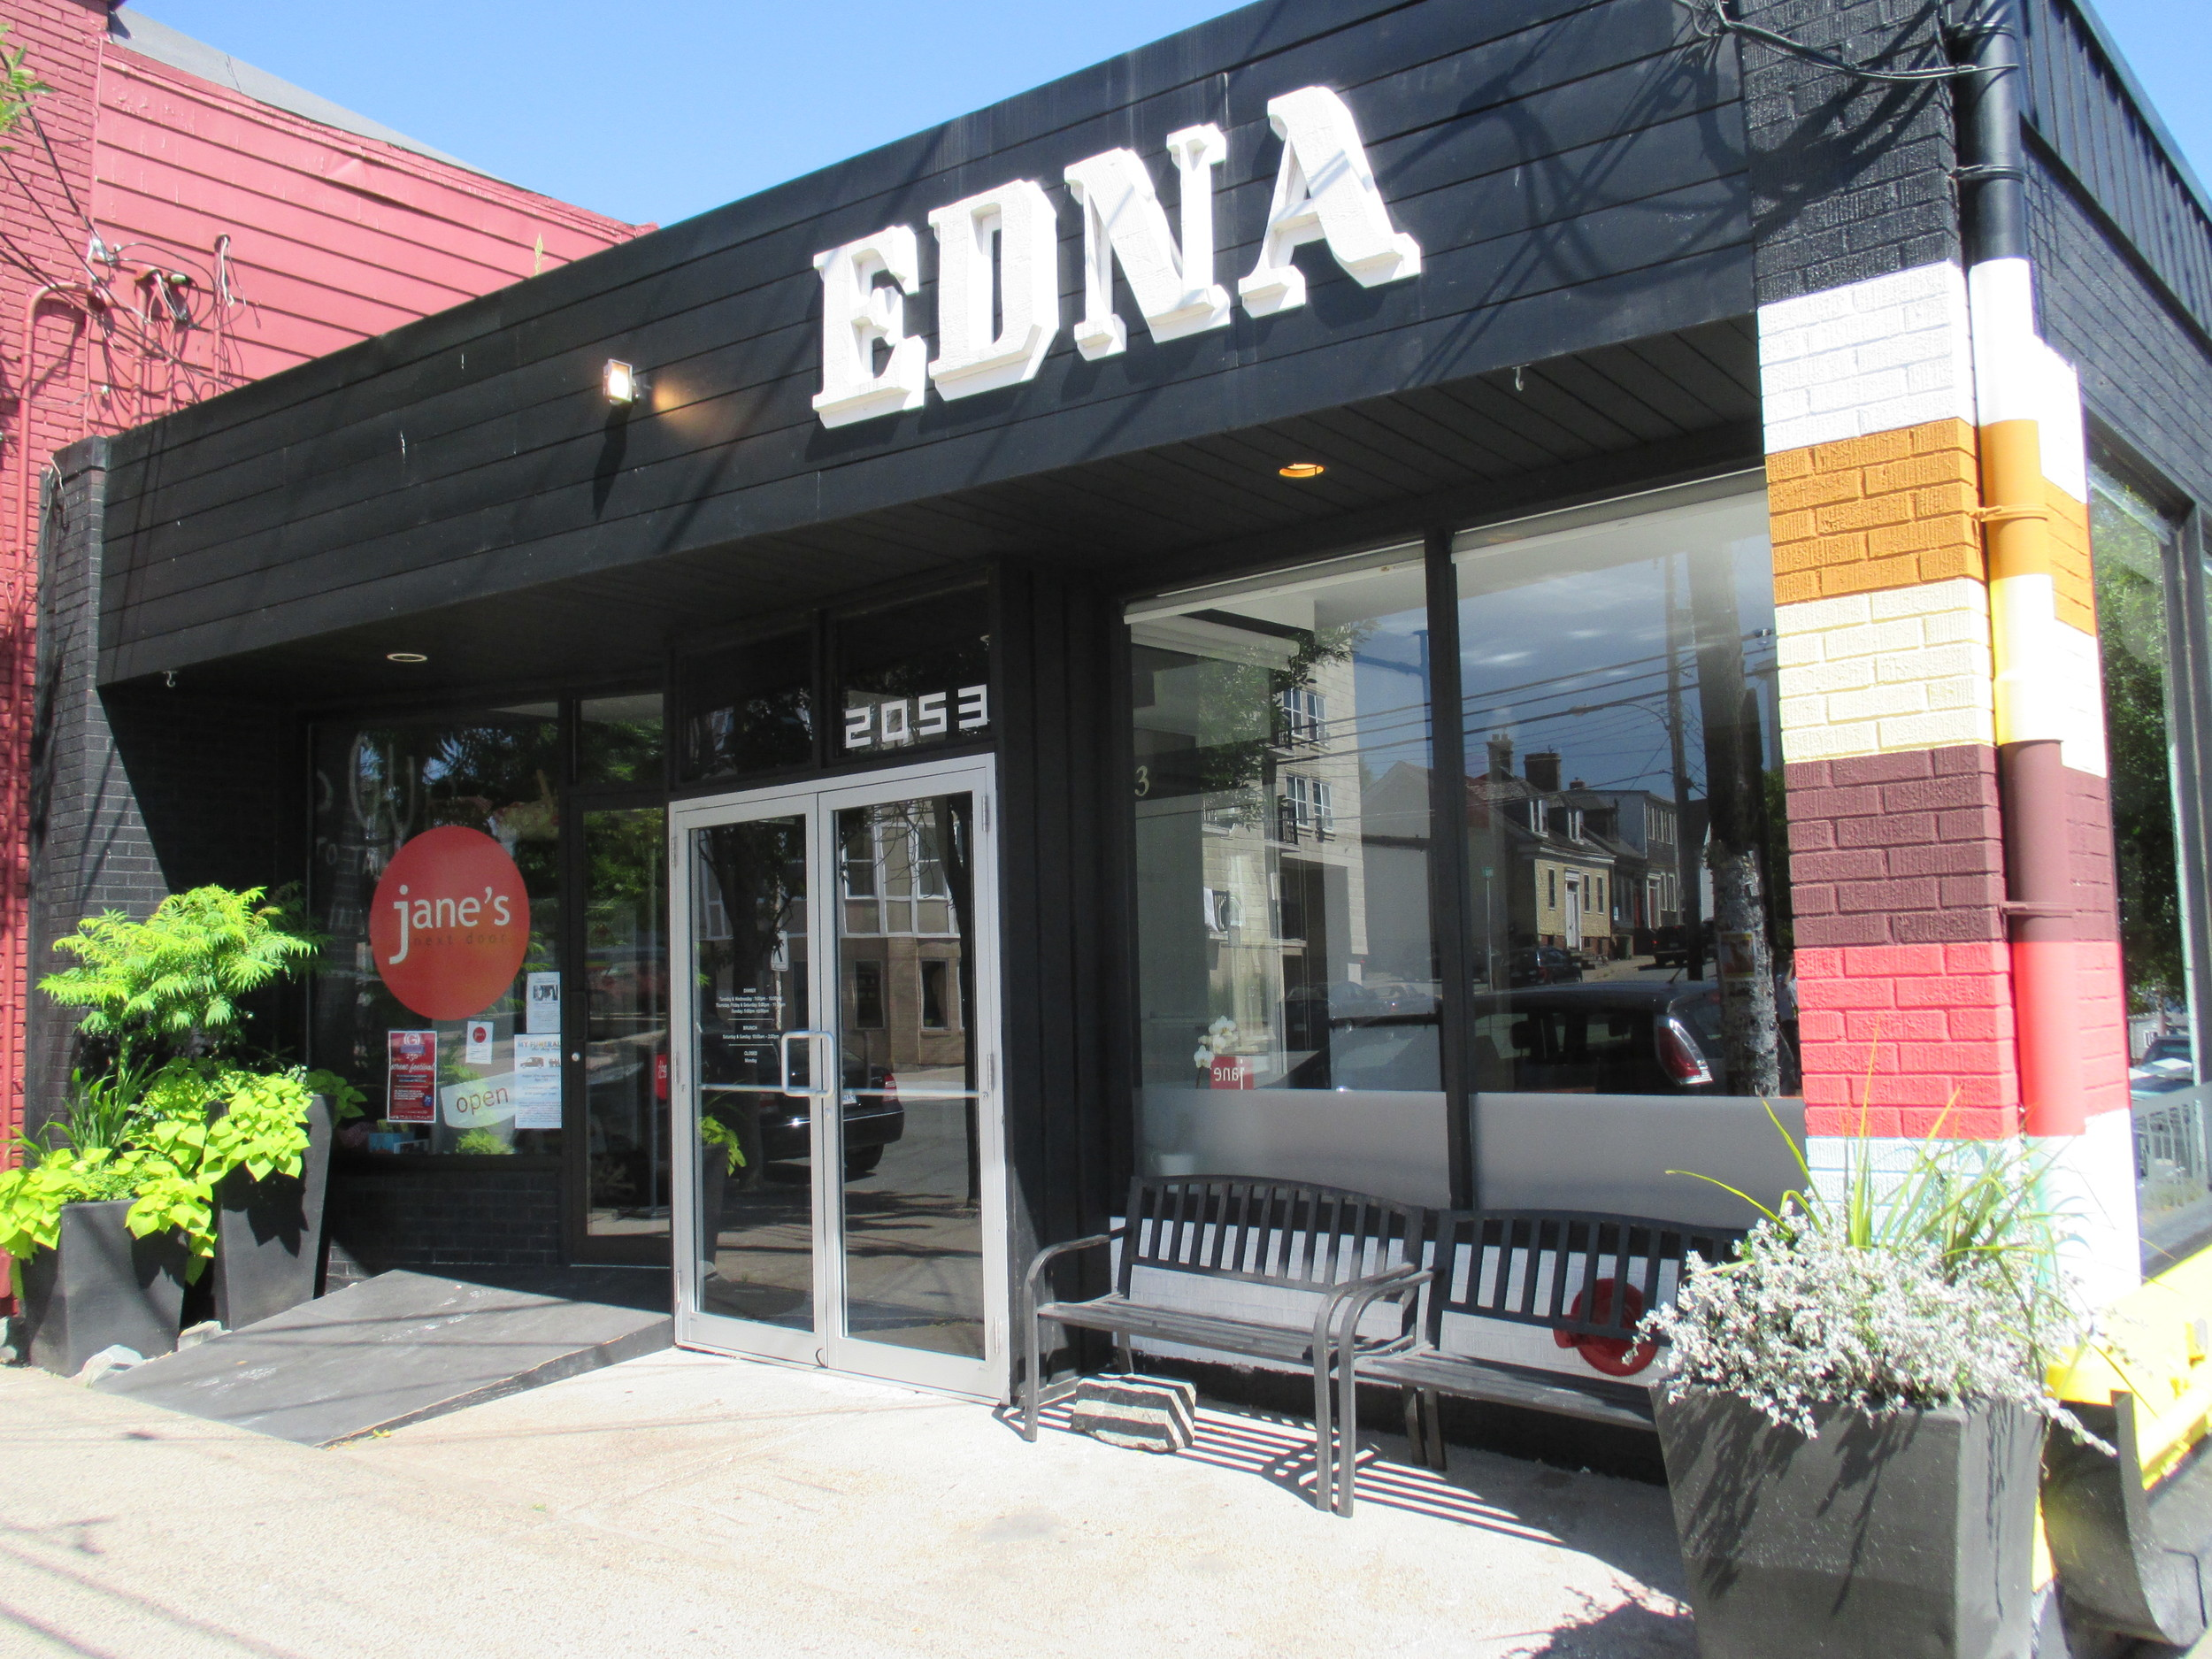 Jane & Edna - Commercial Planters — OUTSIDE!